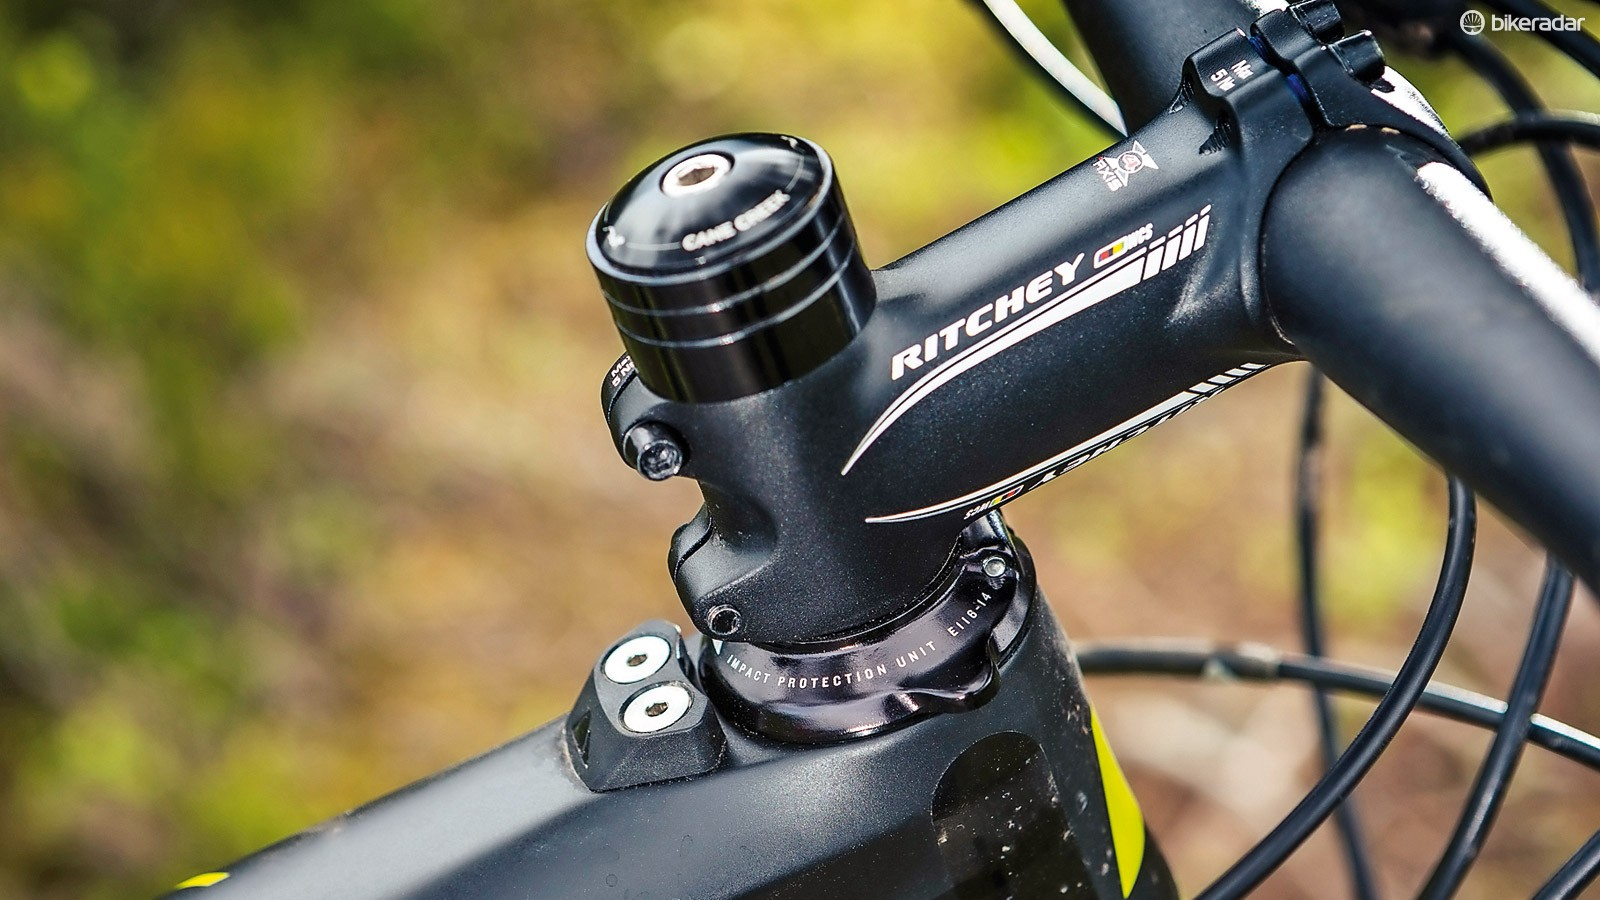 A neat bolt-on bumper protects the carbon top tube from bar spinning accidents